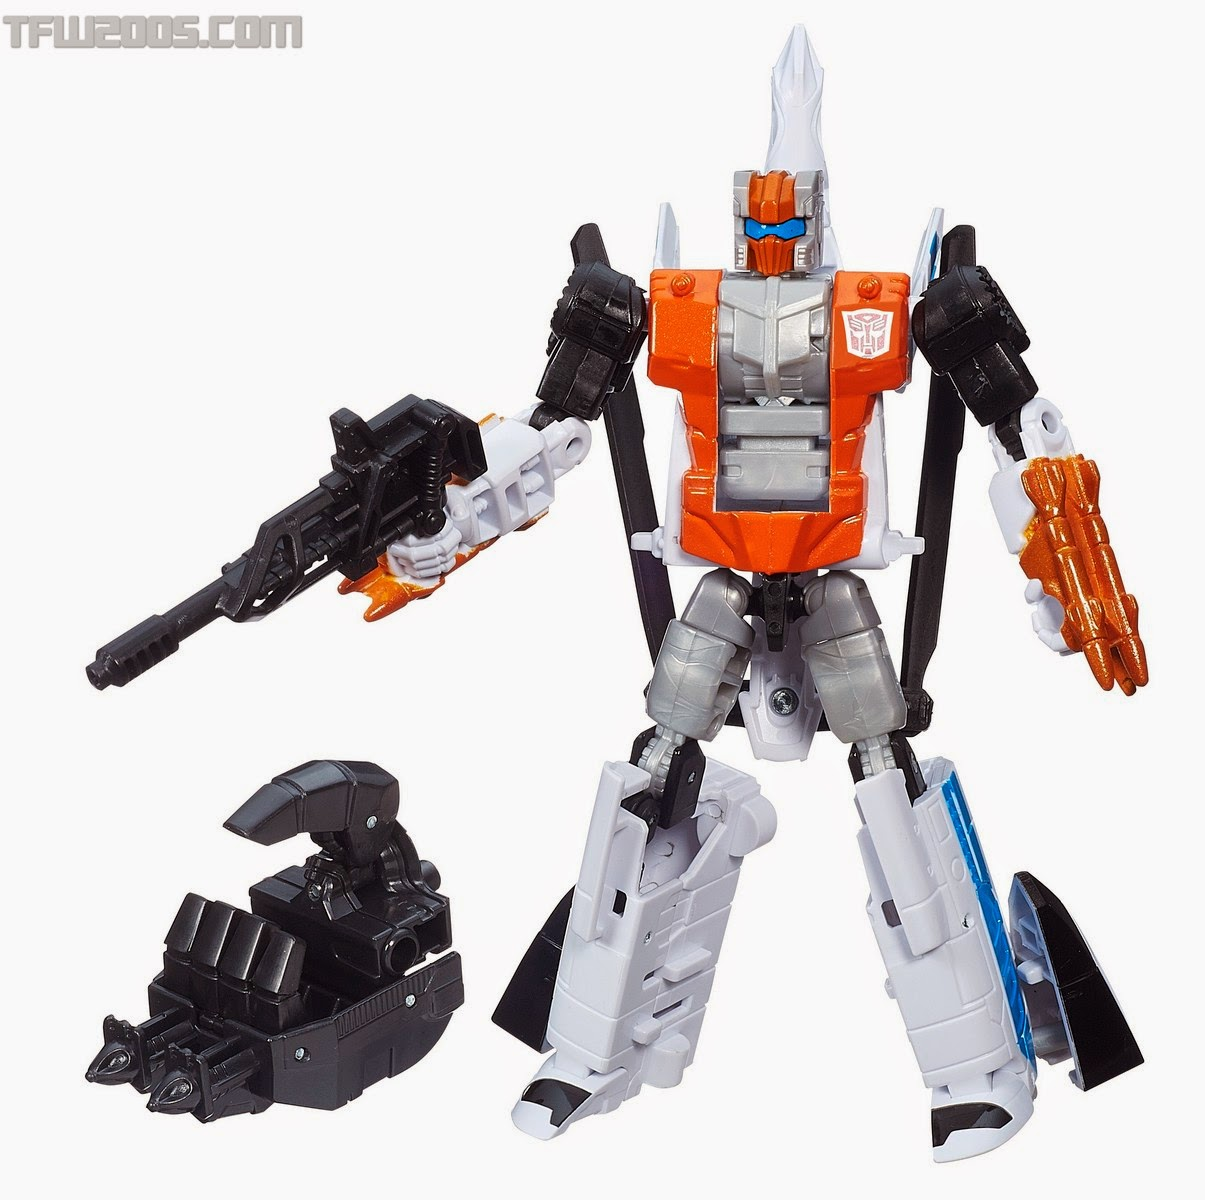 Hasbro - Transformers - The Combiner Wars - Aerialbots - Alpha Bravo